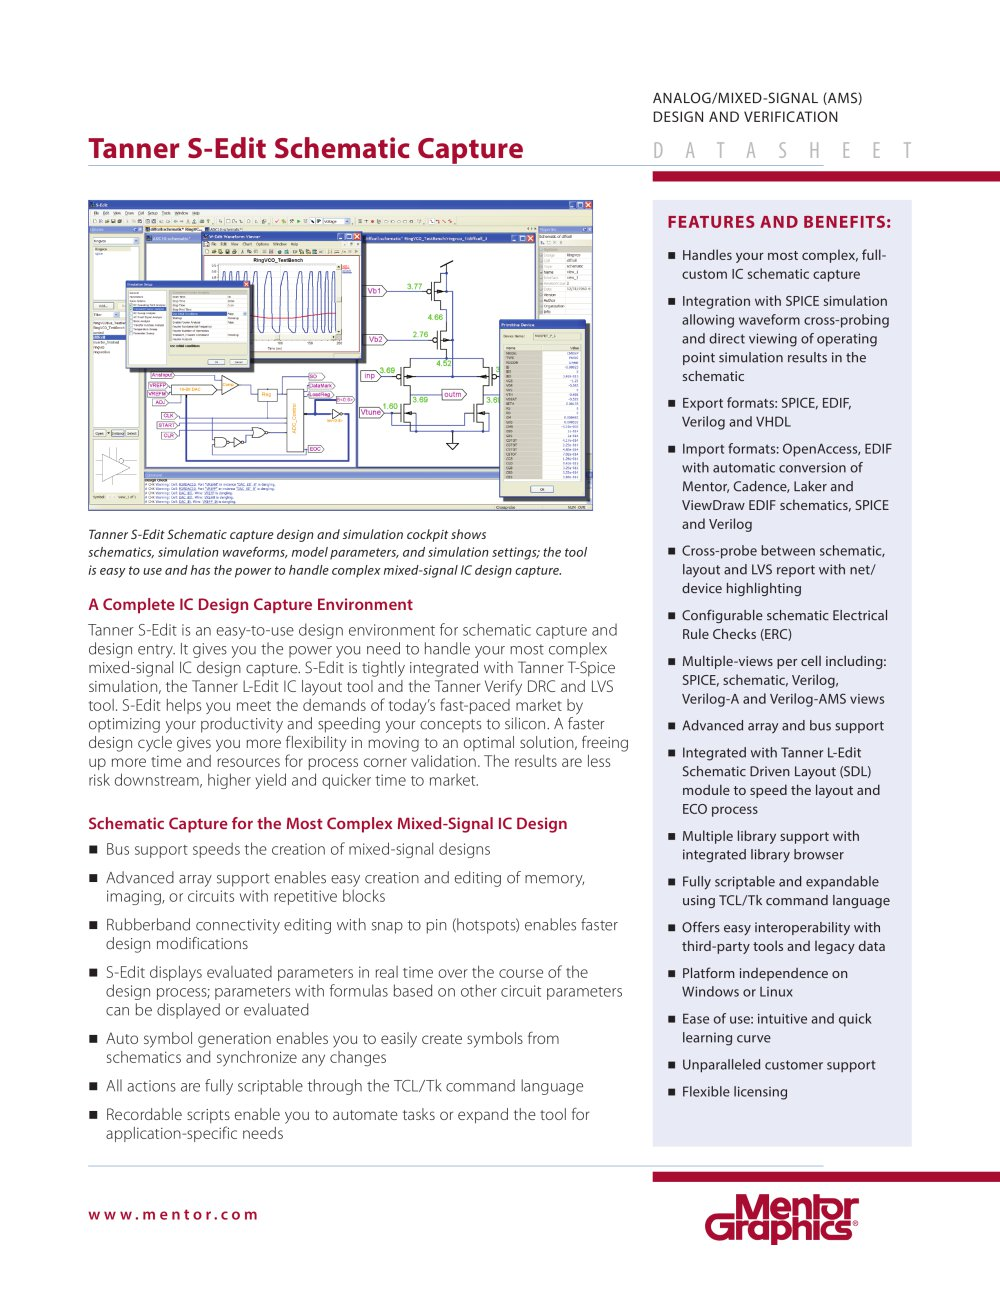 Tanner S-Edit Schematic Capture - Mentor Graphics - PDF Catalogue ...